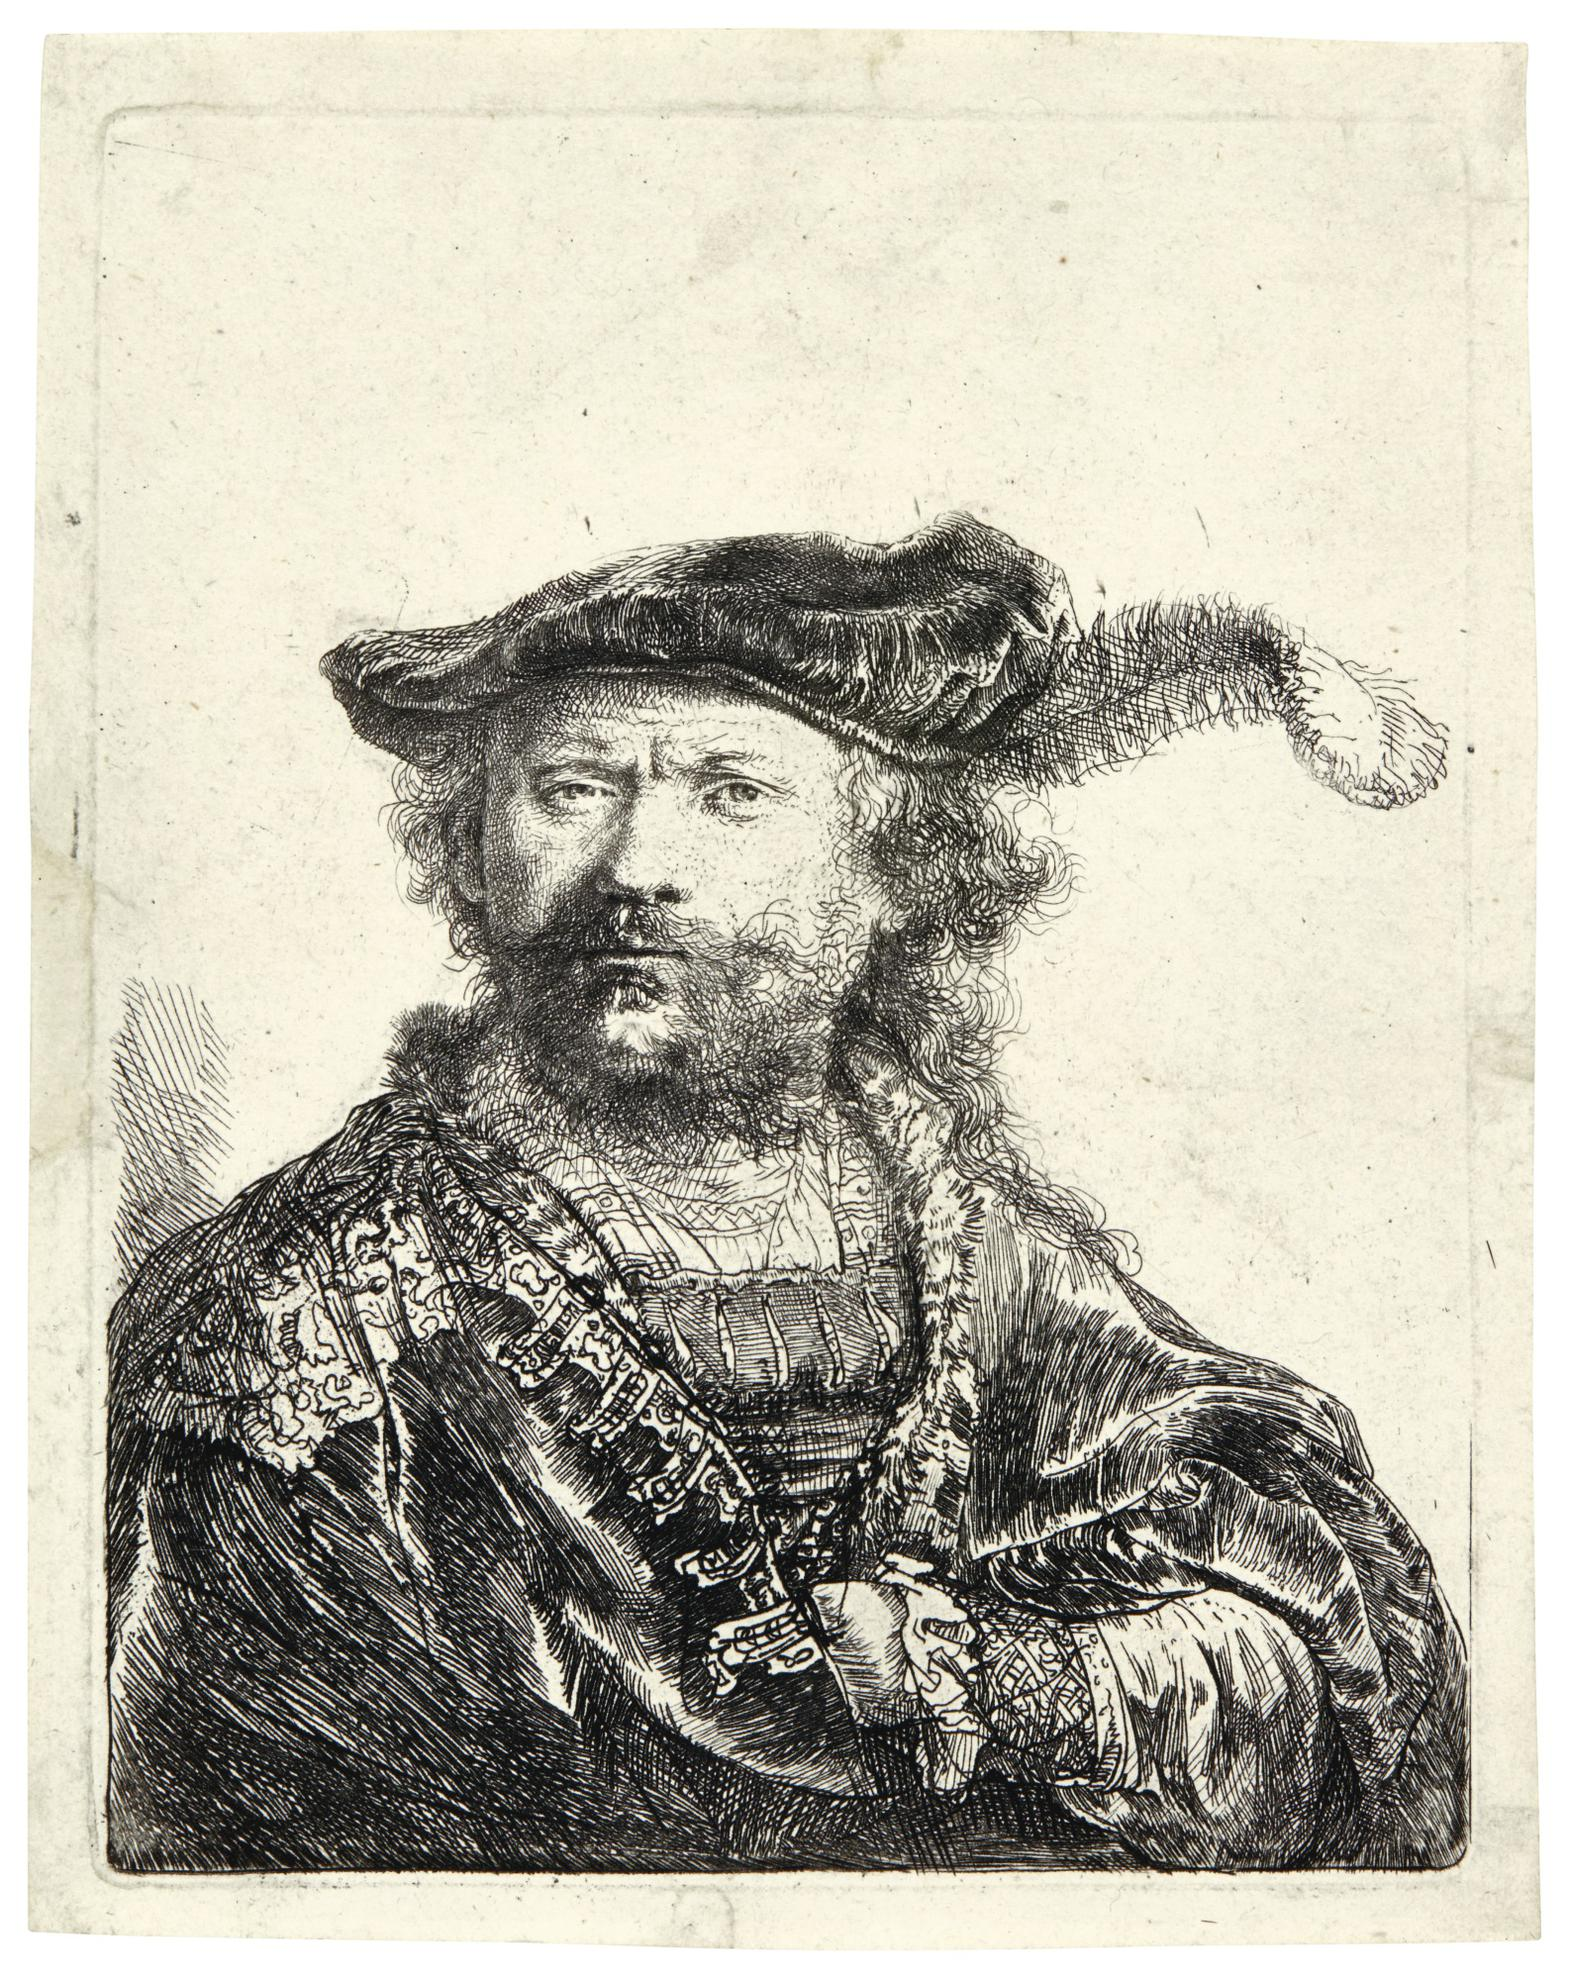 Rembrandt van Rijn-Self-Portrait In A Velvet Cap With Plume (B., Holl. 20; New Holl. 170; H. 156)-1638